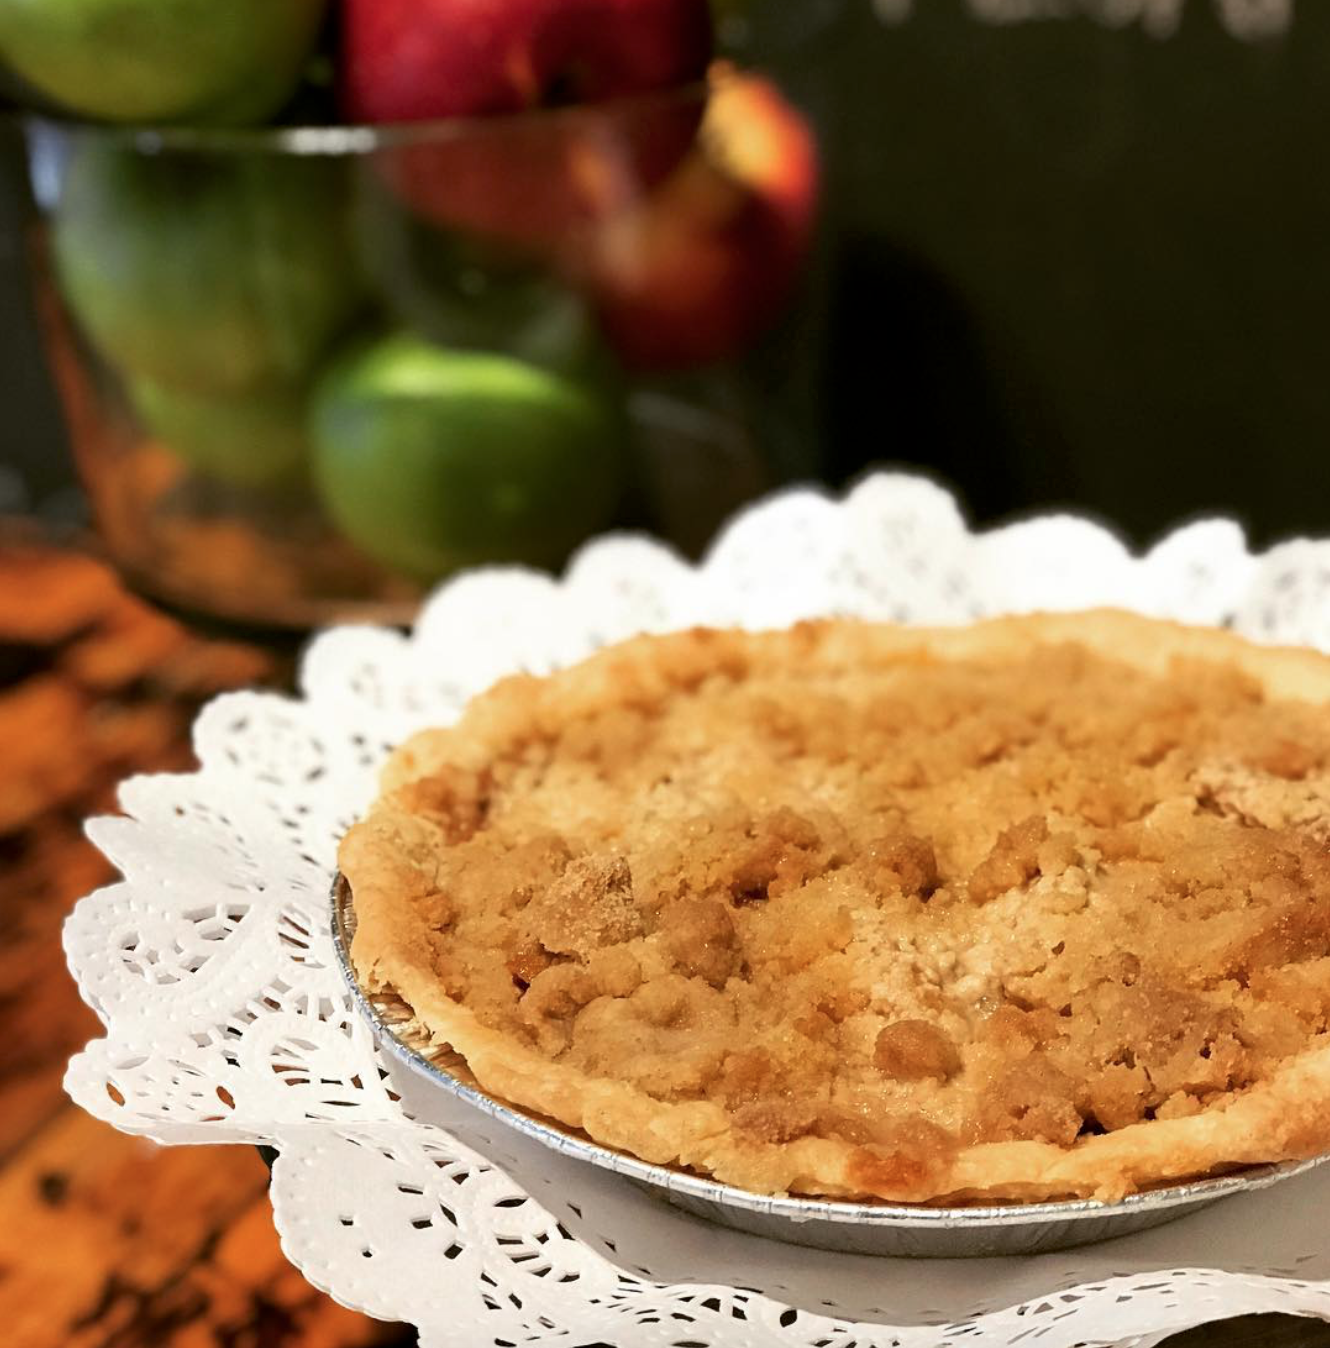 Call to order pies! 810.6111